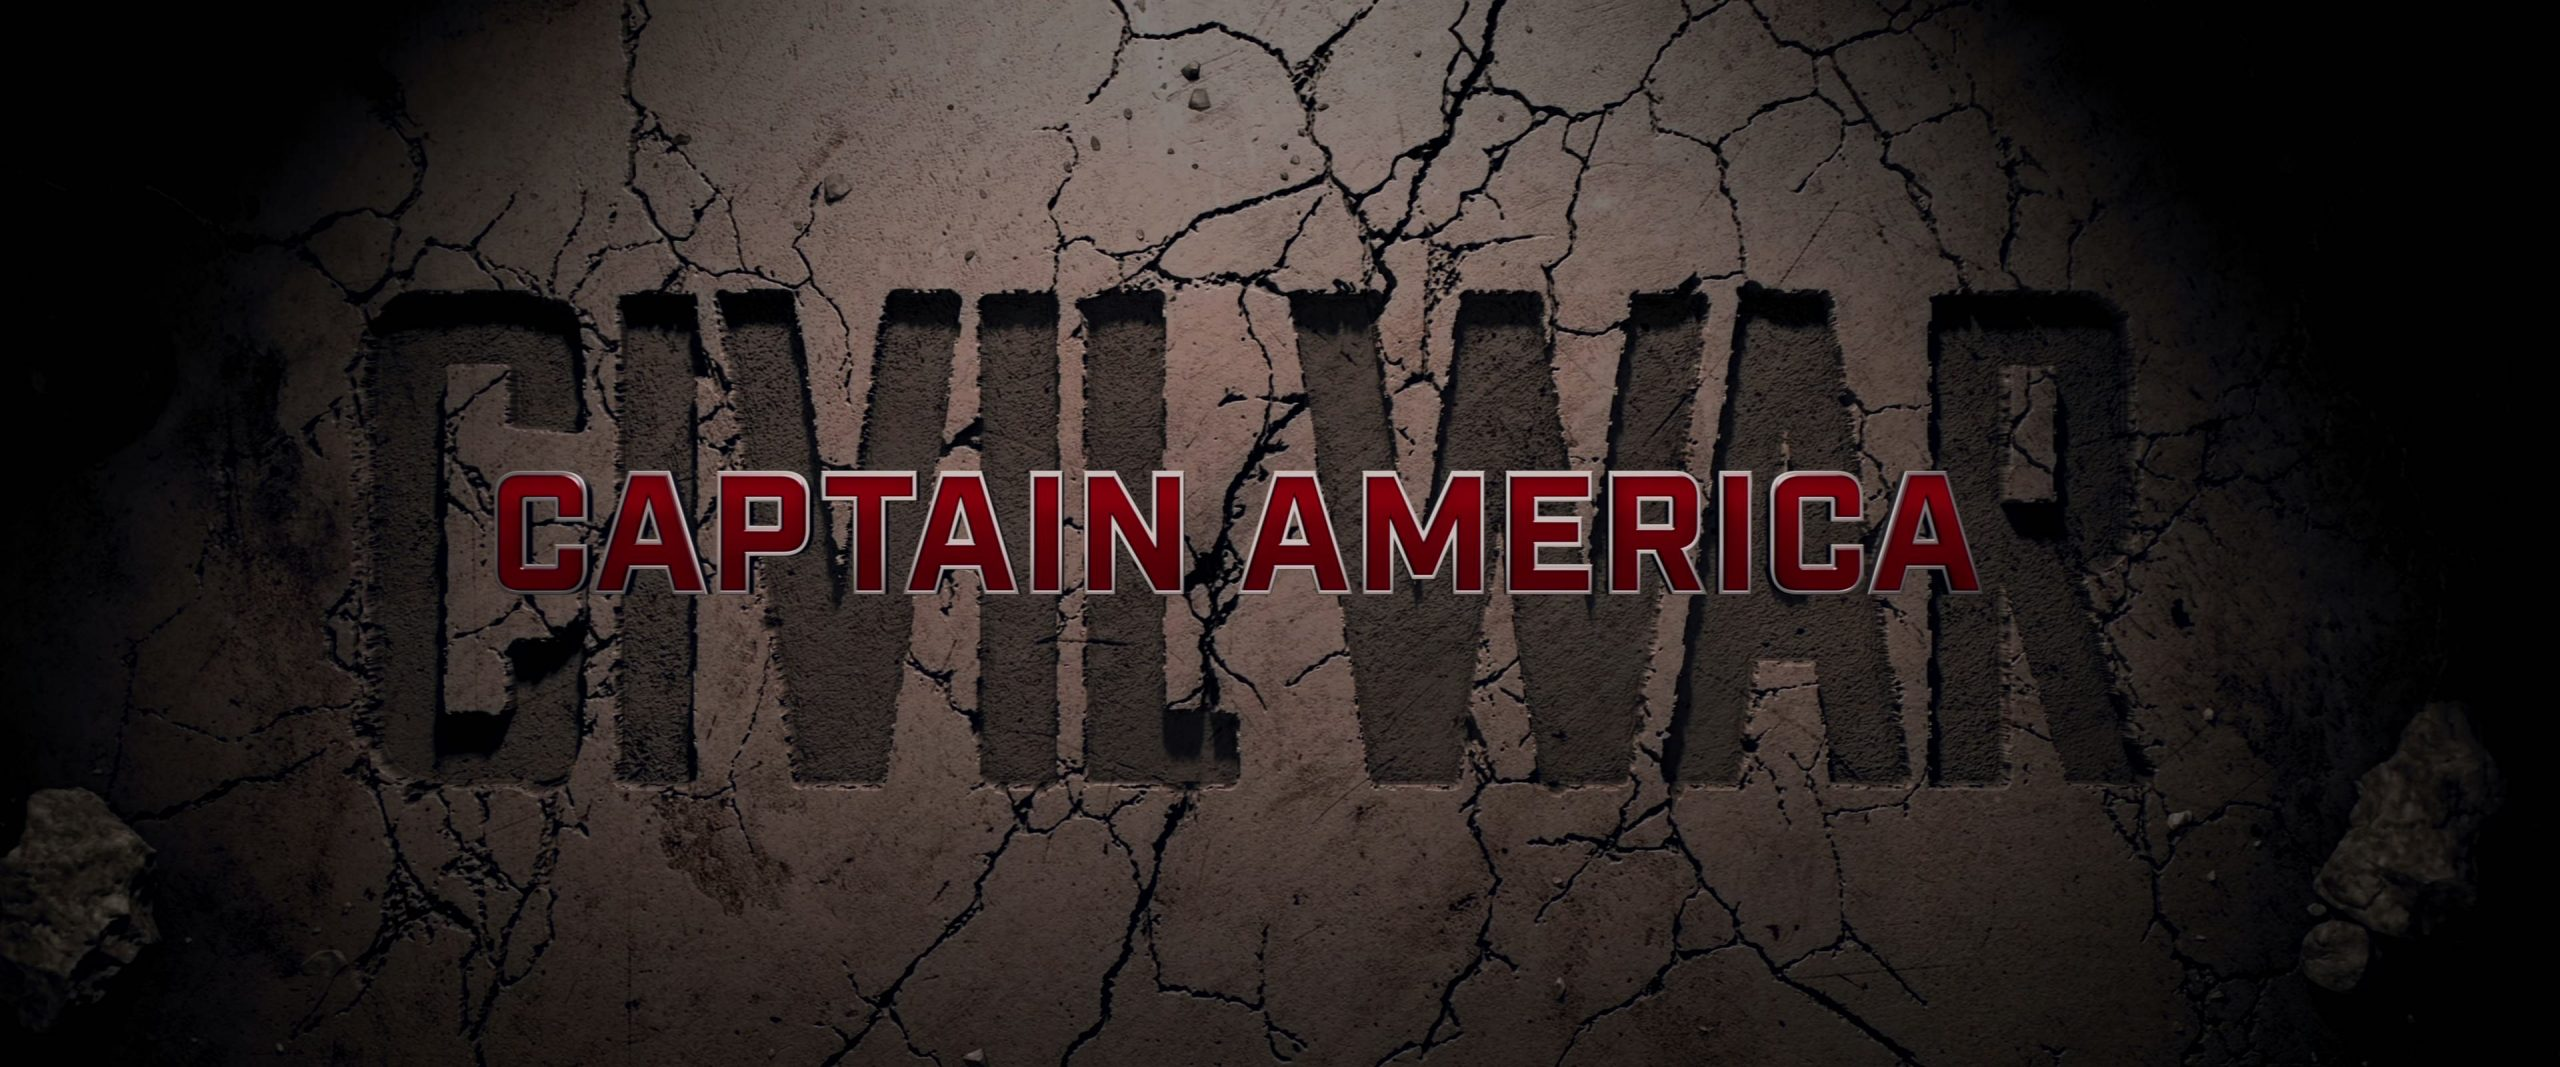 Captain America: Civil War (2016) [4K]